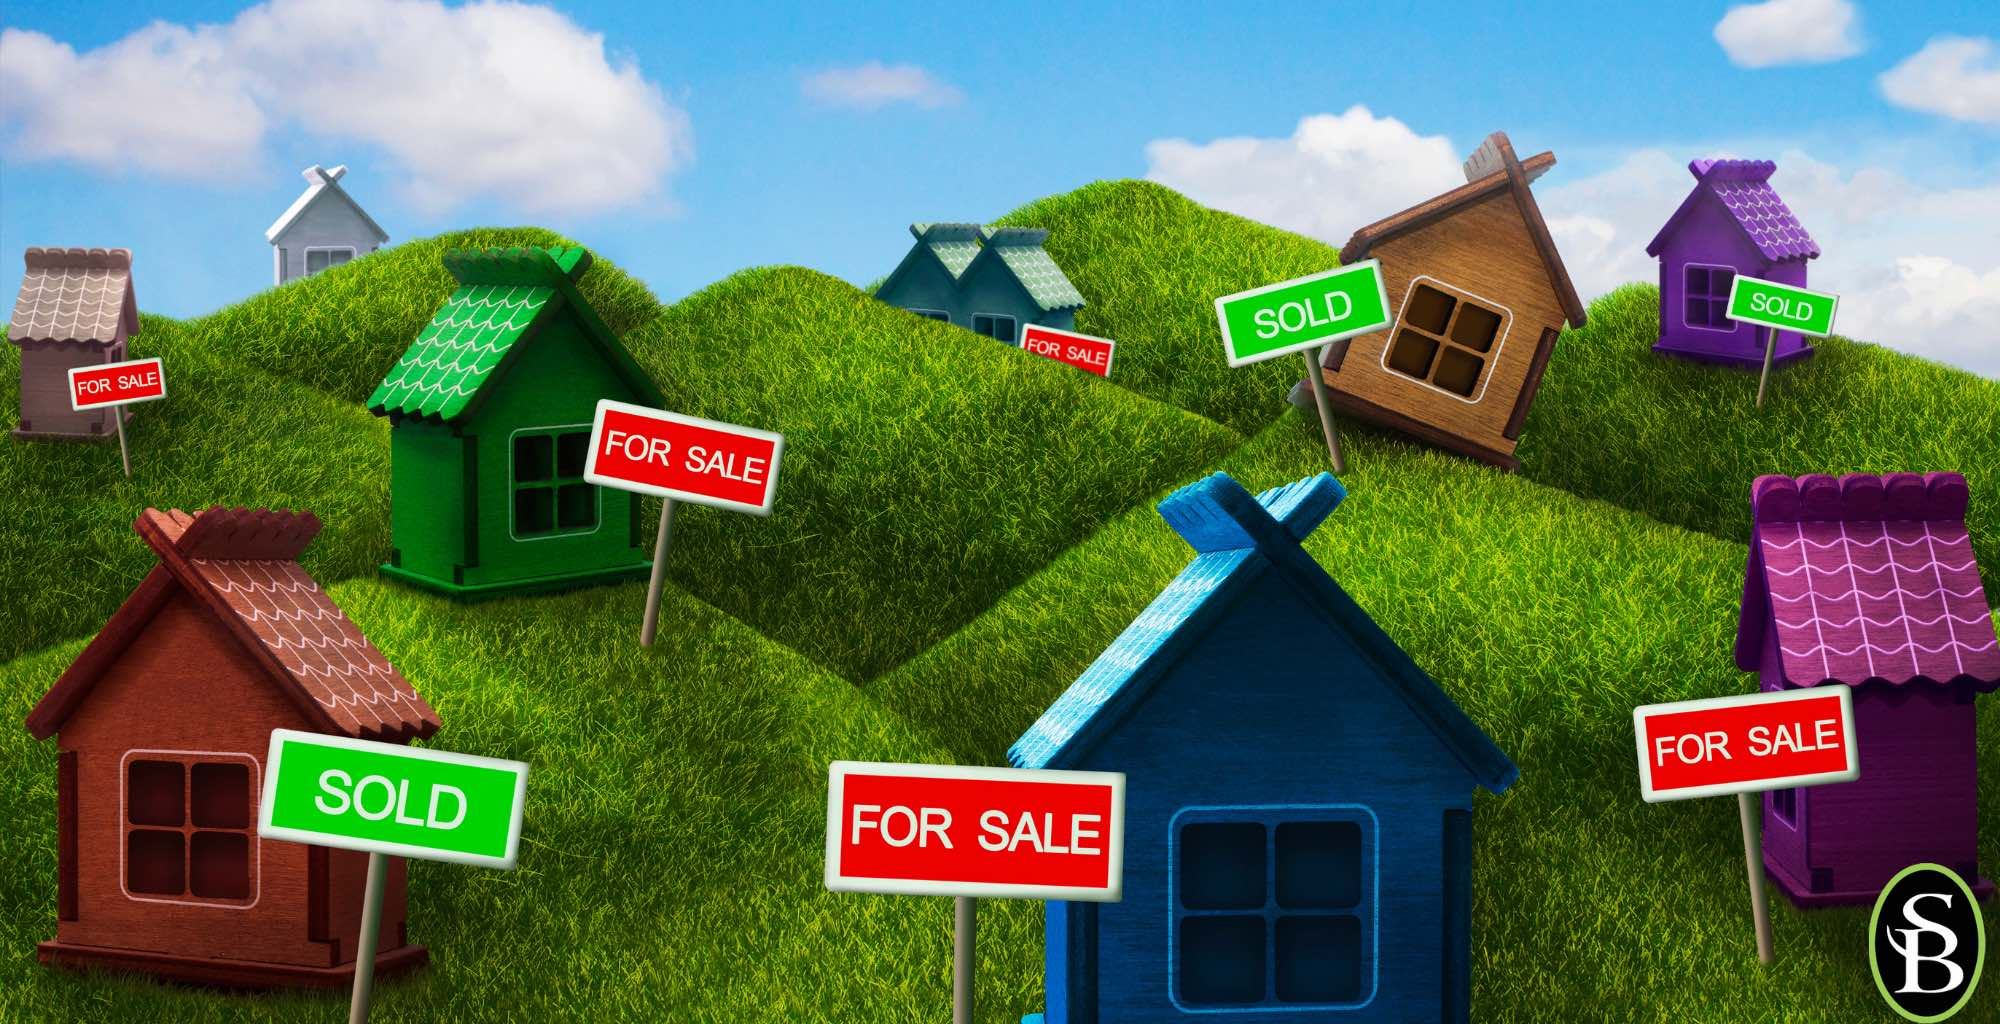 FAQ On Buying Or Selling A Property